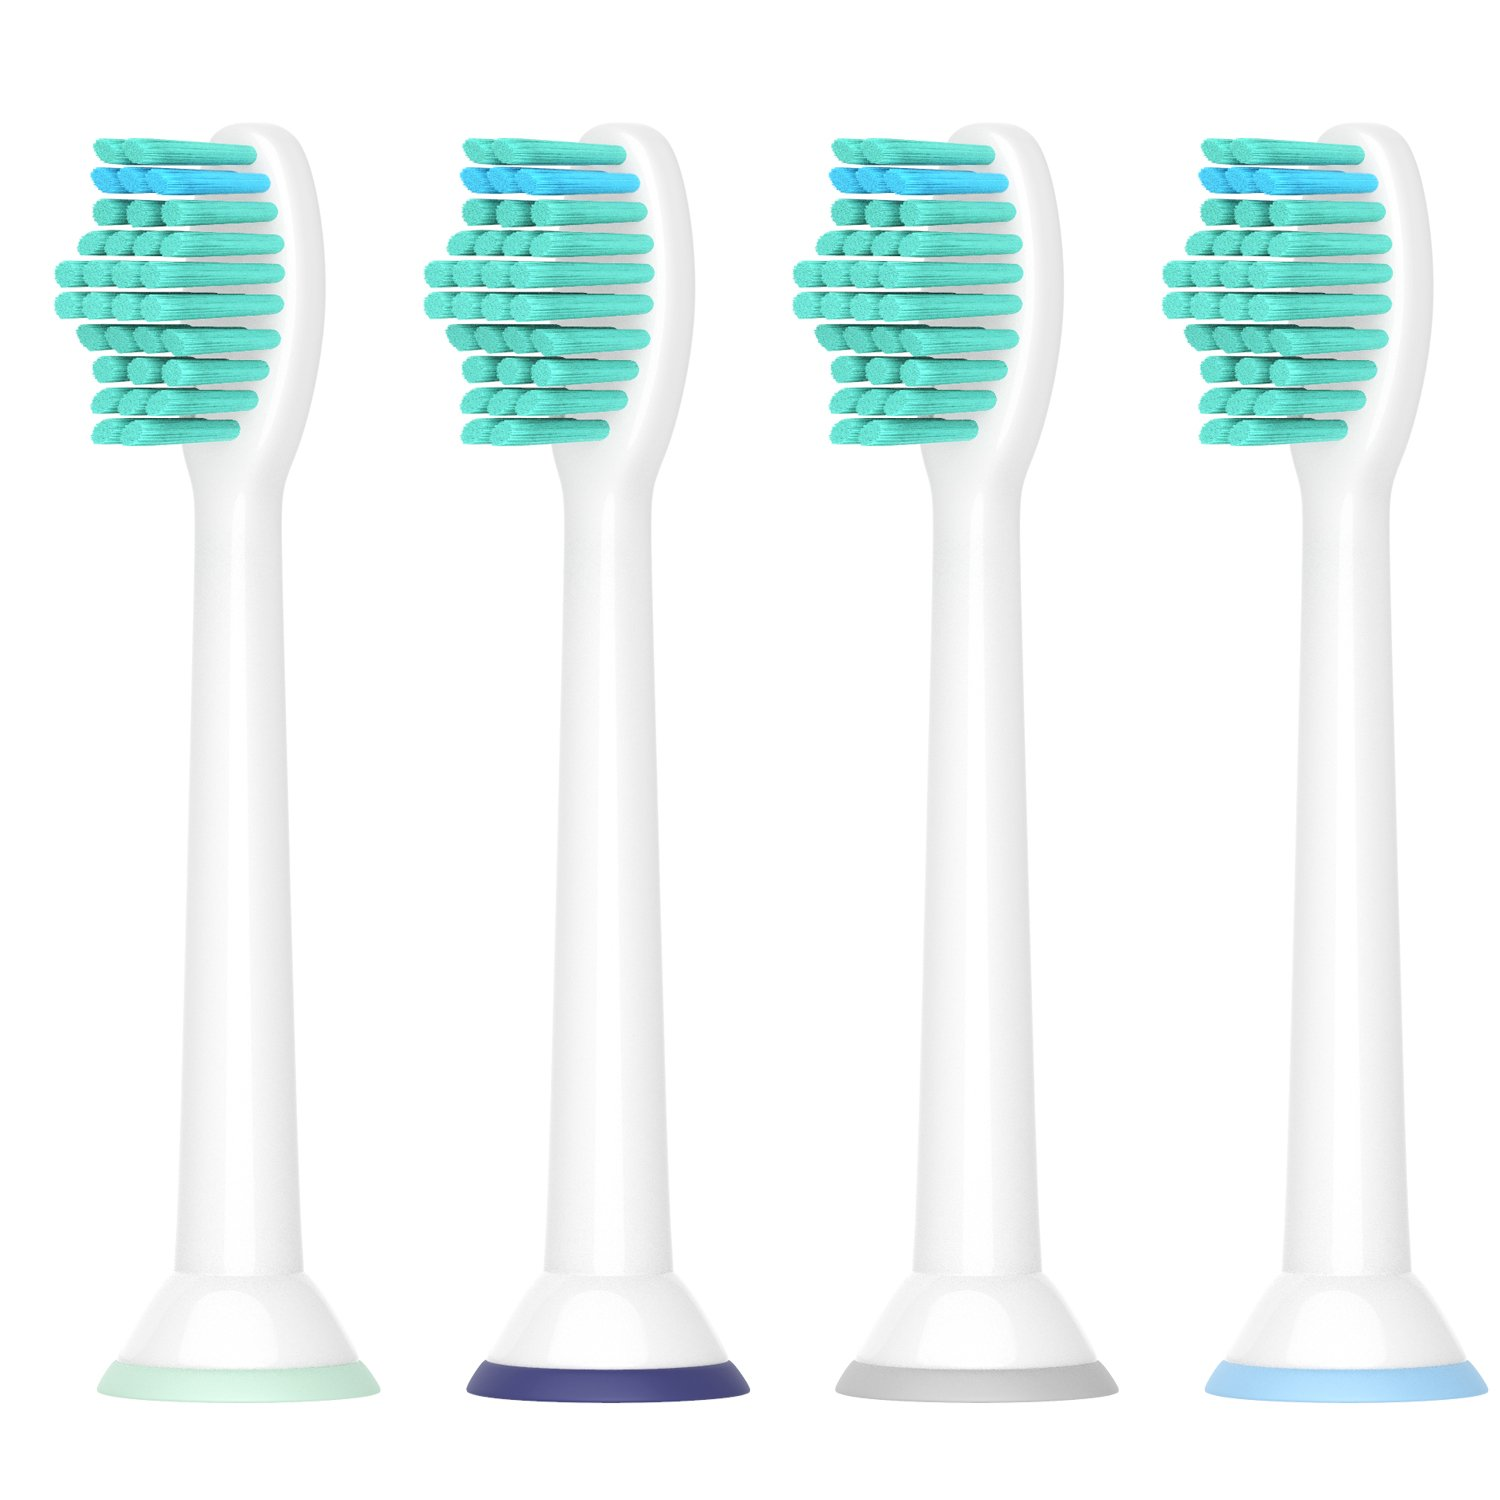 Sonicare Replacement Toothbrush Heads, 12 Pack Fits Philips Sonicare ProResults,4 Pack,fits DiamondClean,EasyClean,FlexCare,HealthyWhite,Hydroclean,PowerUp,Plaque Control,Gum Health,Sonicare for Kids by WyFun